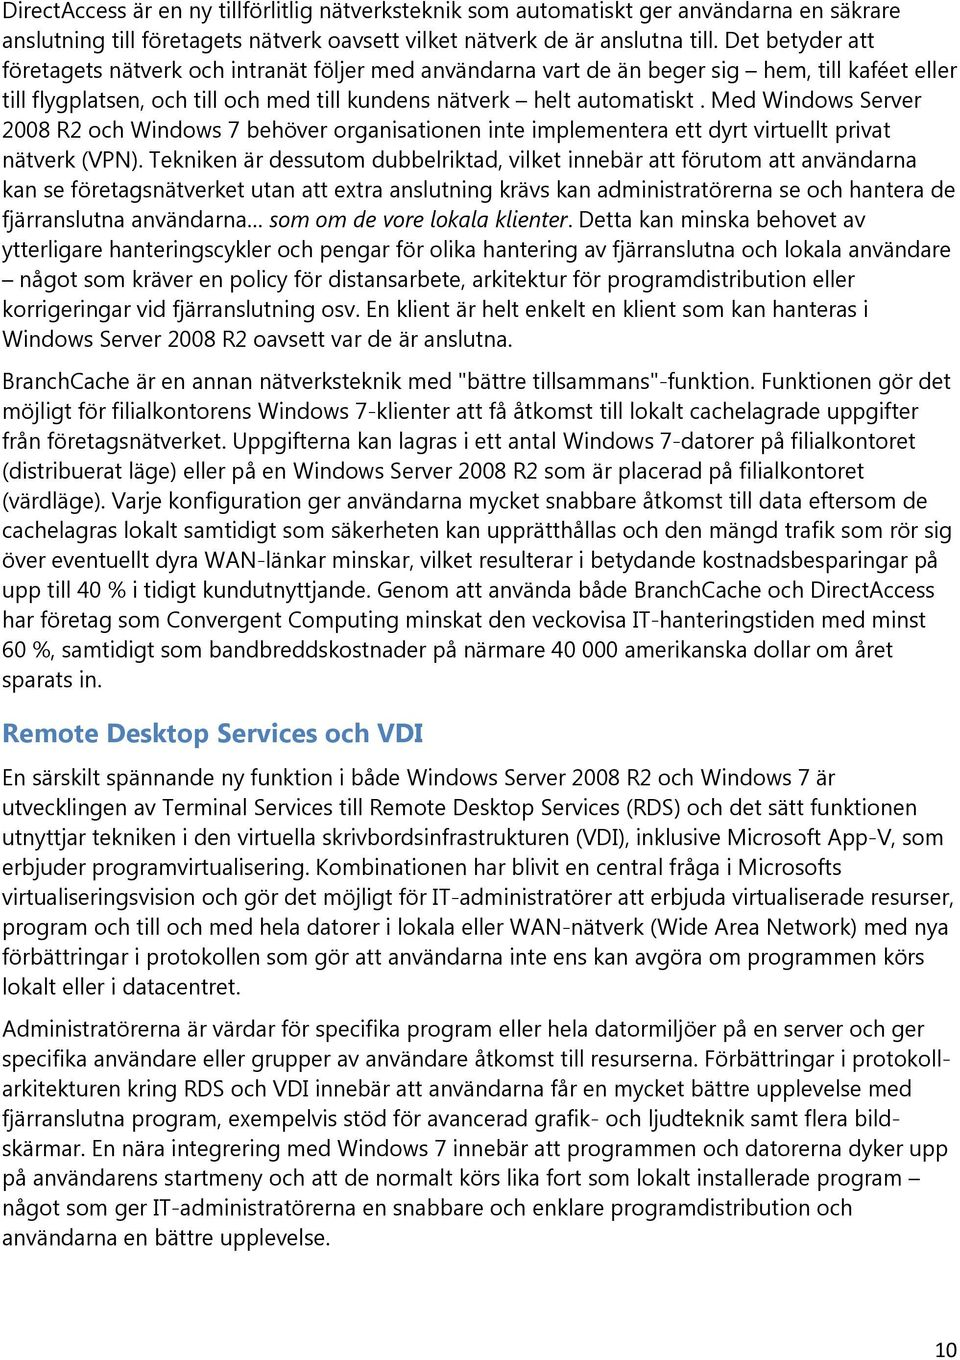 Med Windows Server 2008 R2 och Windows 7 behöver organisationen inte implementera ett dyrt virtuellt privat nätverk (VPN).